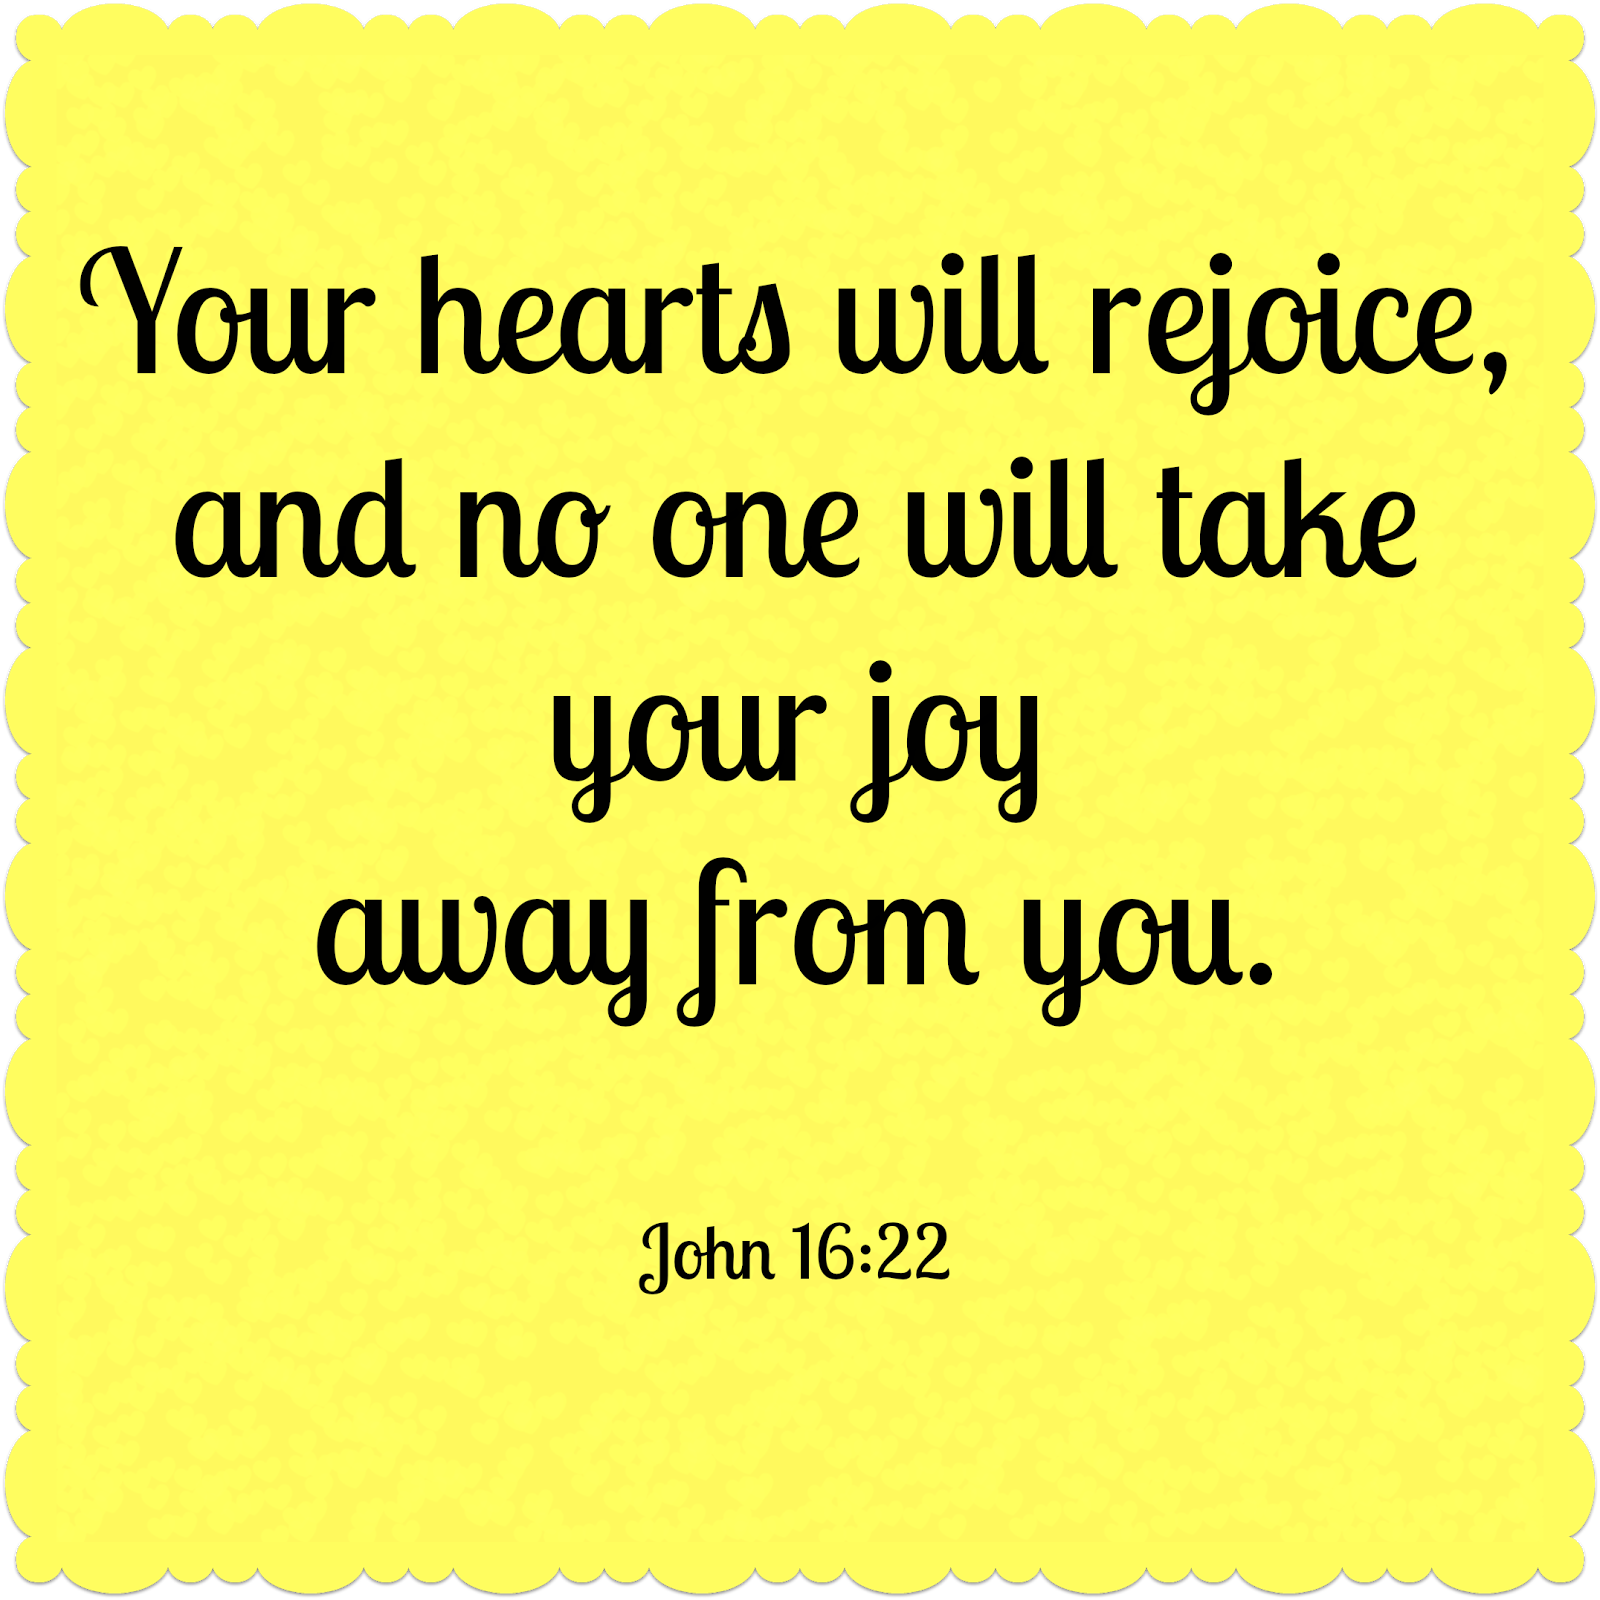 Your hearts will rejoice and no one will take your joy away from you.  John 16:22